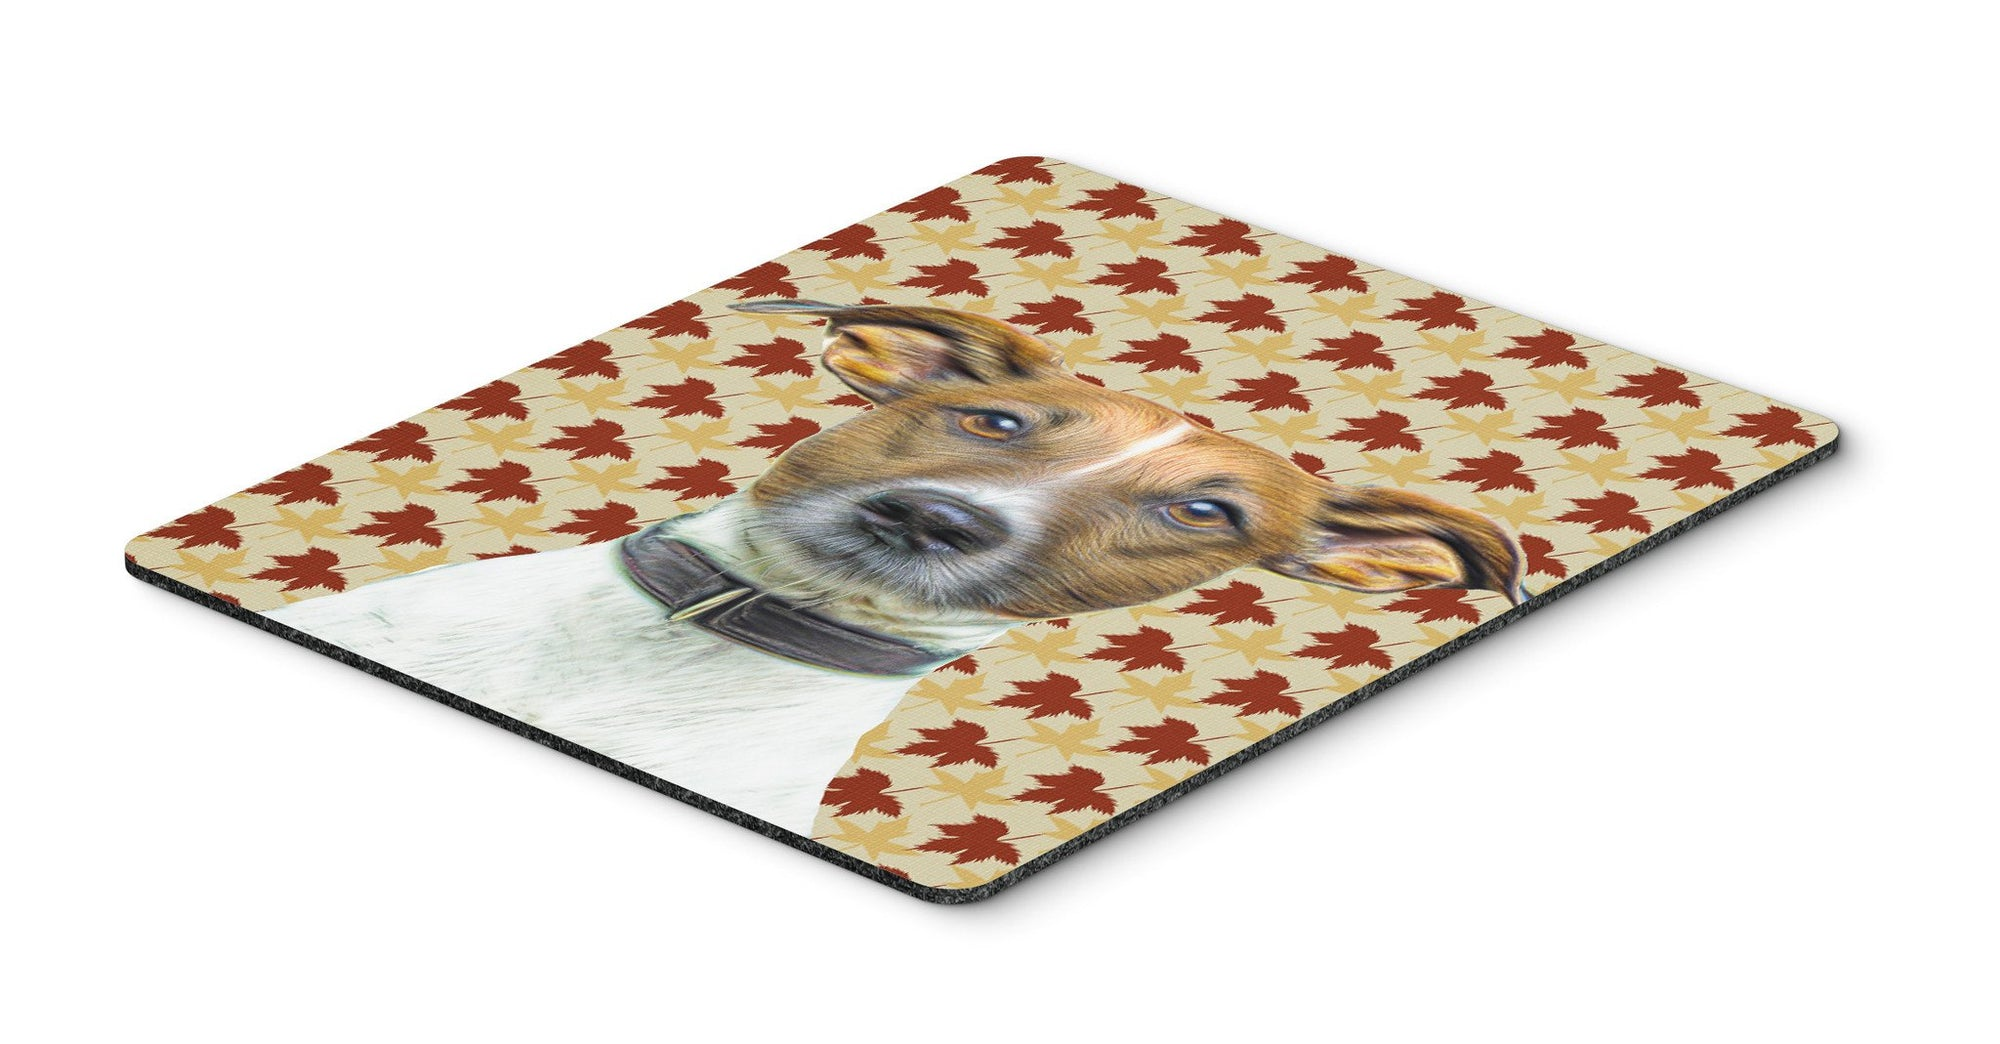 Fall Leaves Jack Russell Terrier Mouse Pad, Hot Pad or Trivet KJ1204MP by Caroline's Treasures